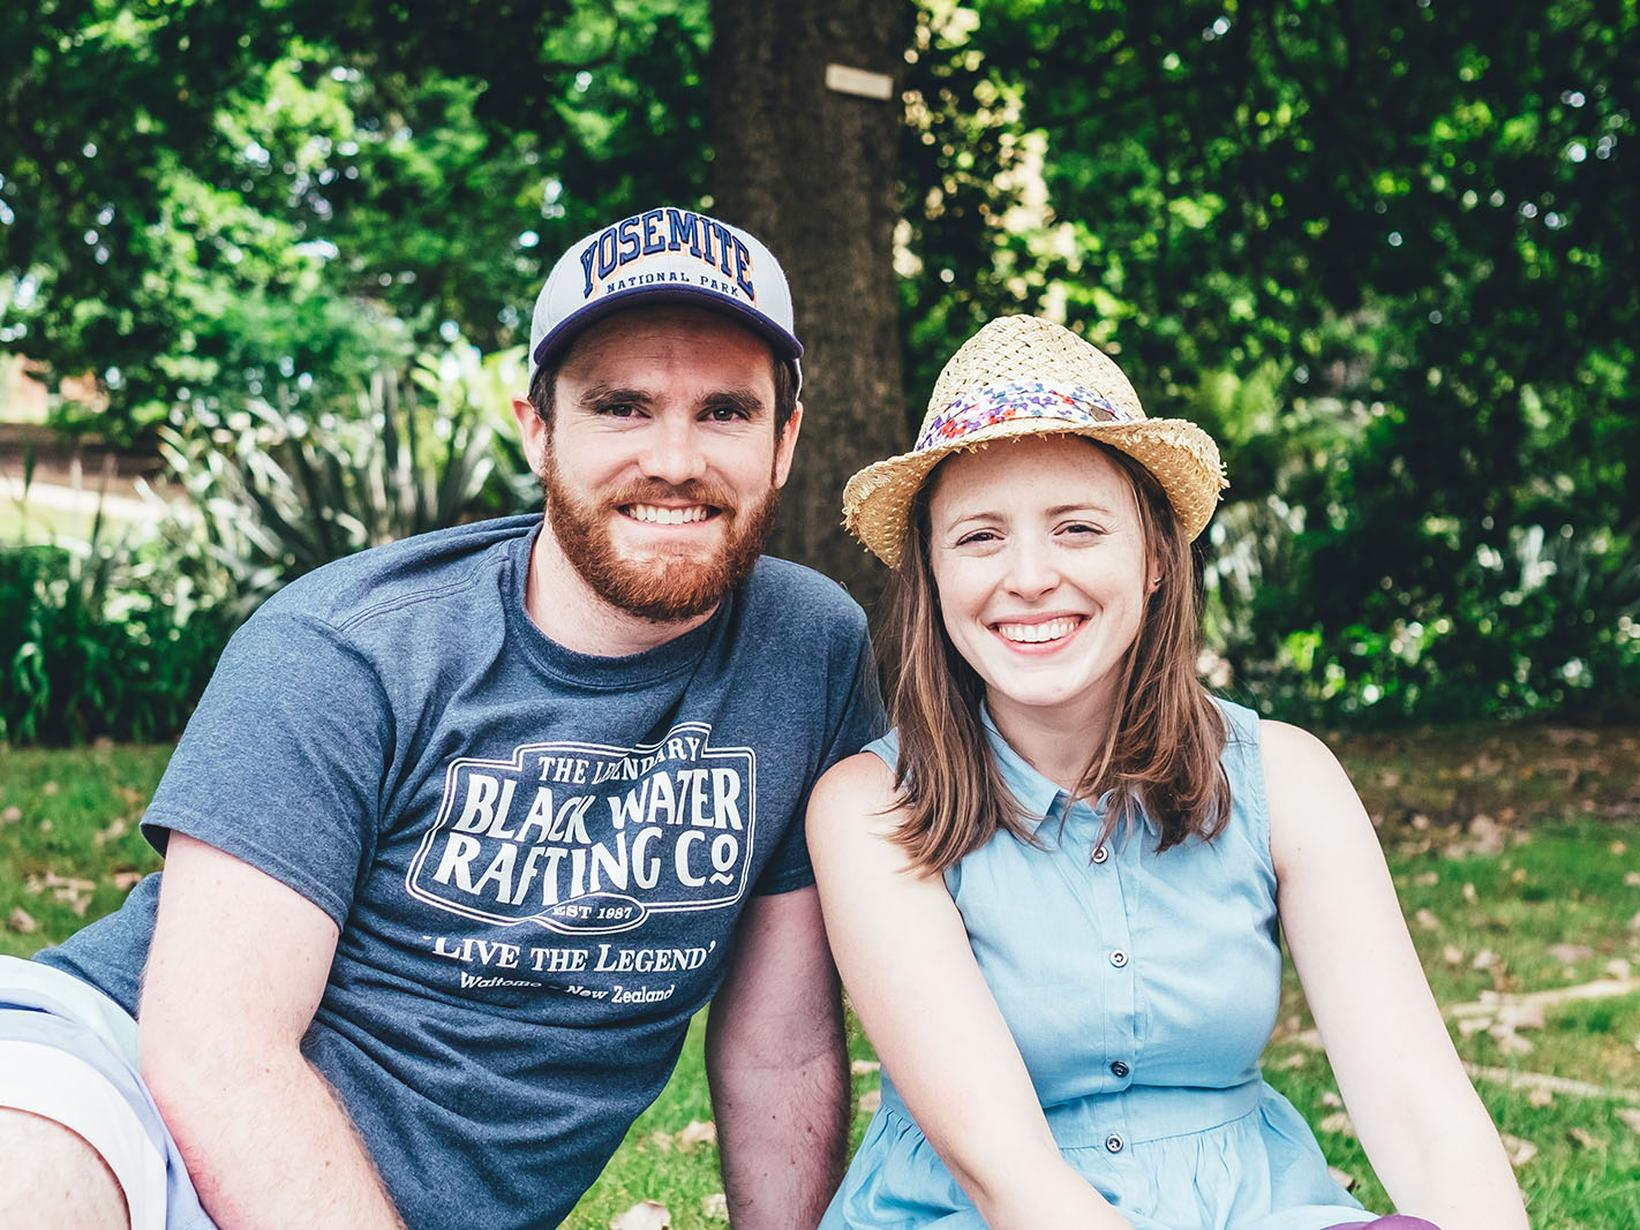 Tim & Anna from Geelong, Victoria, Australia